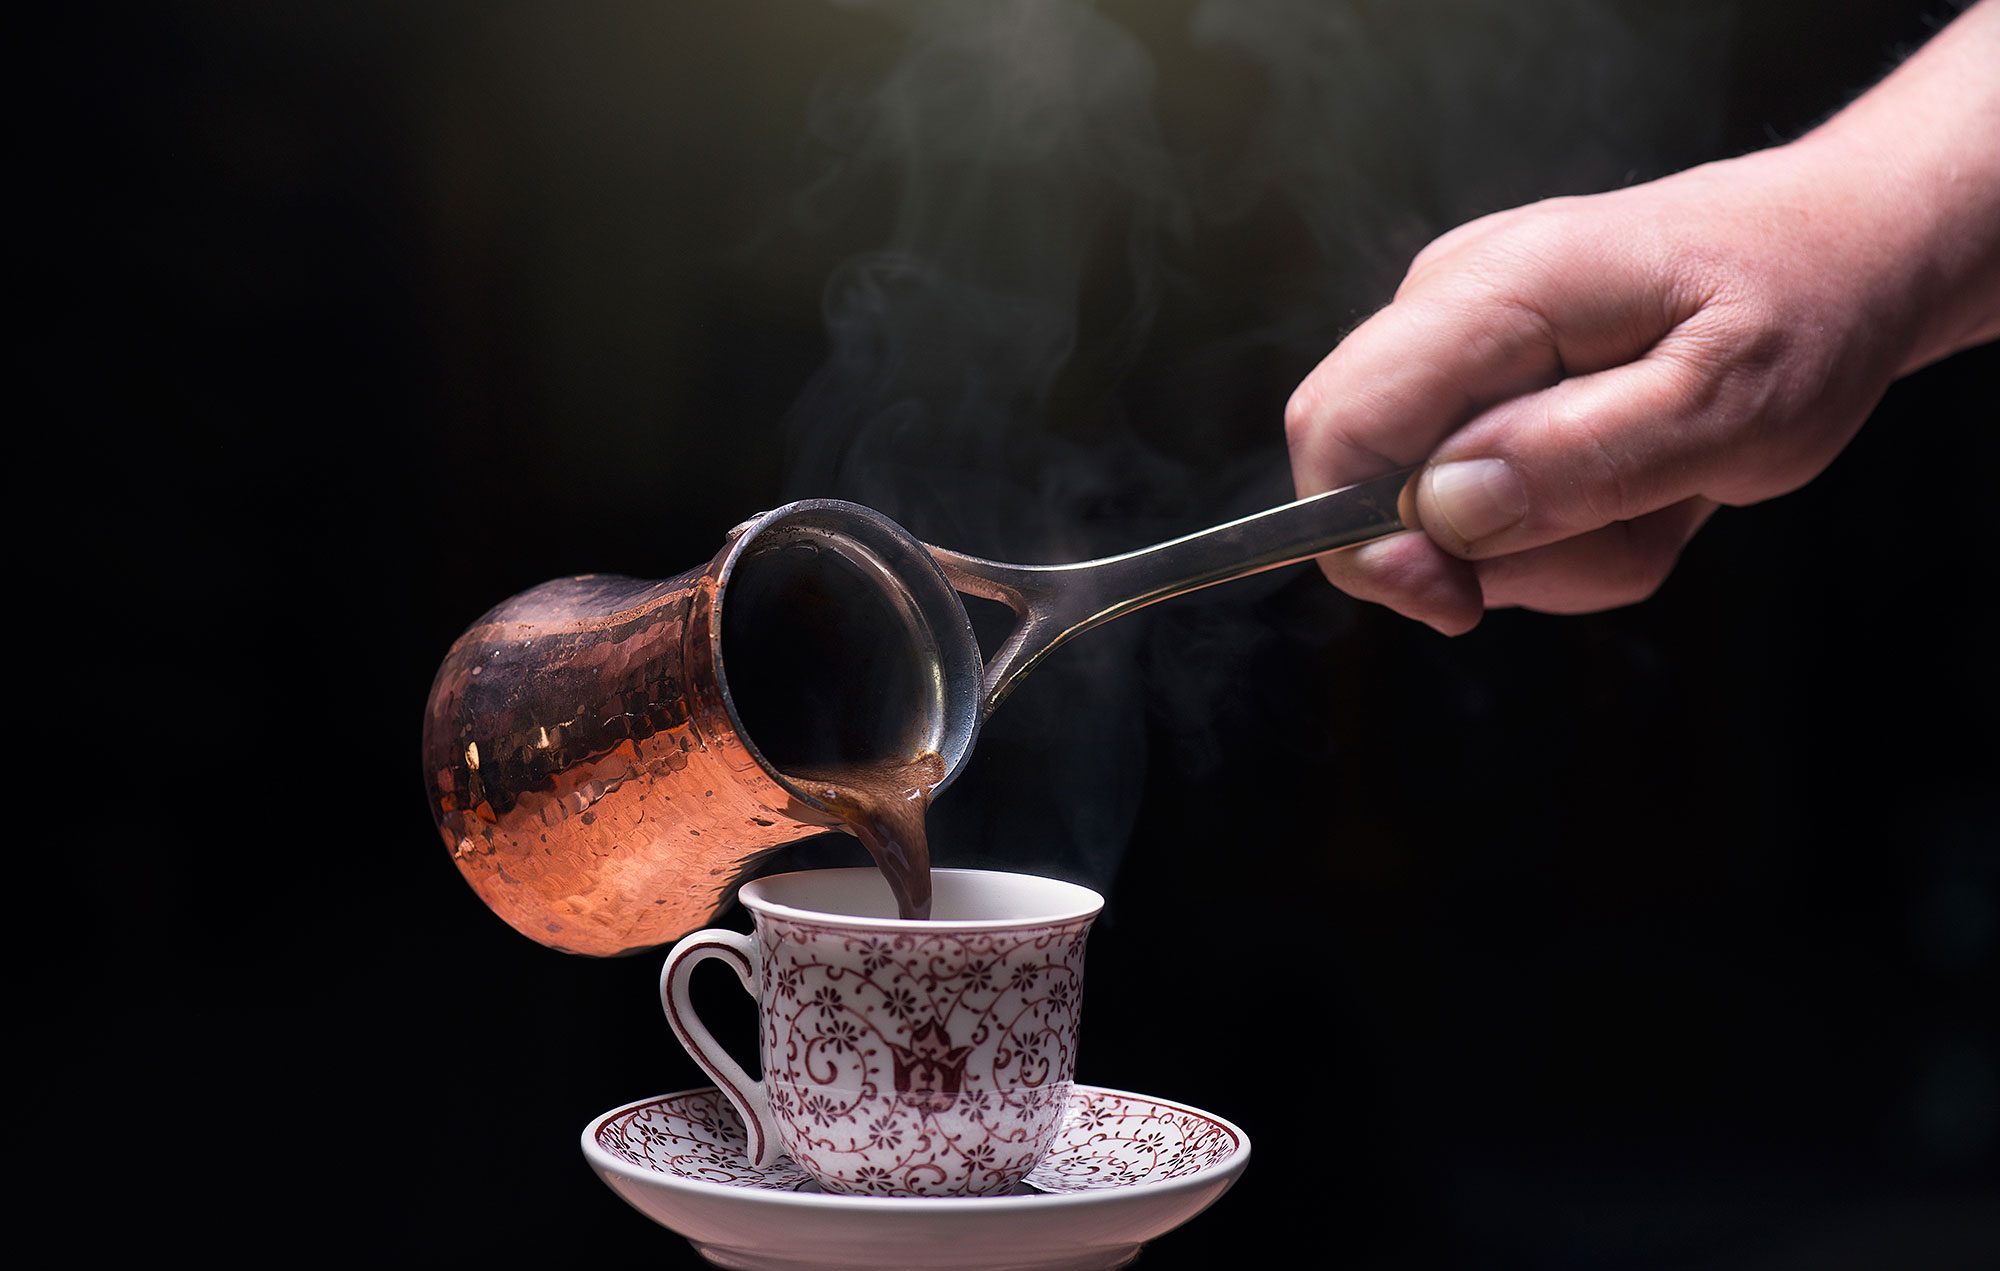 Mastering the art of Turkish coffee at home